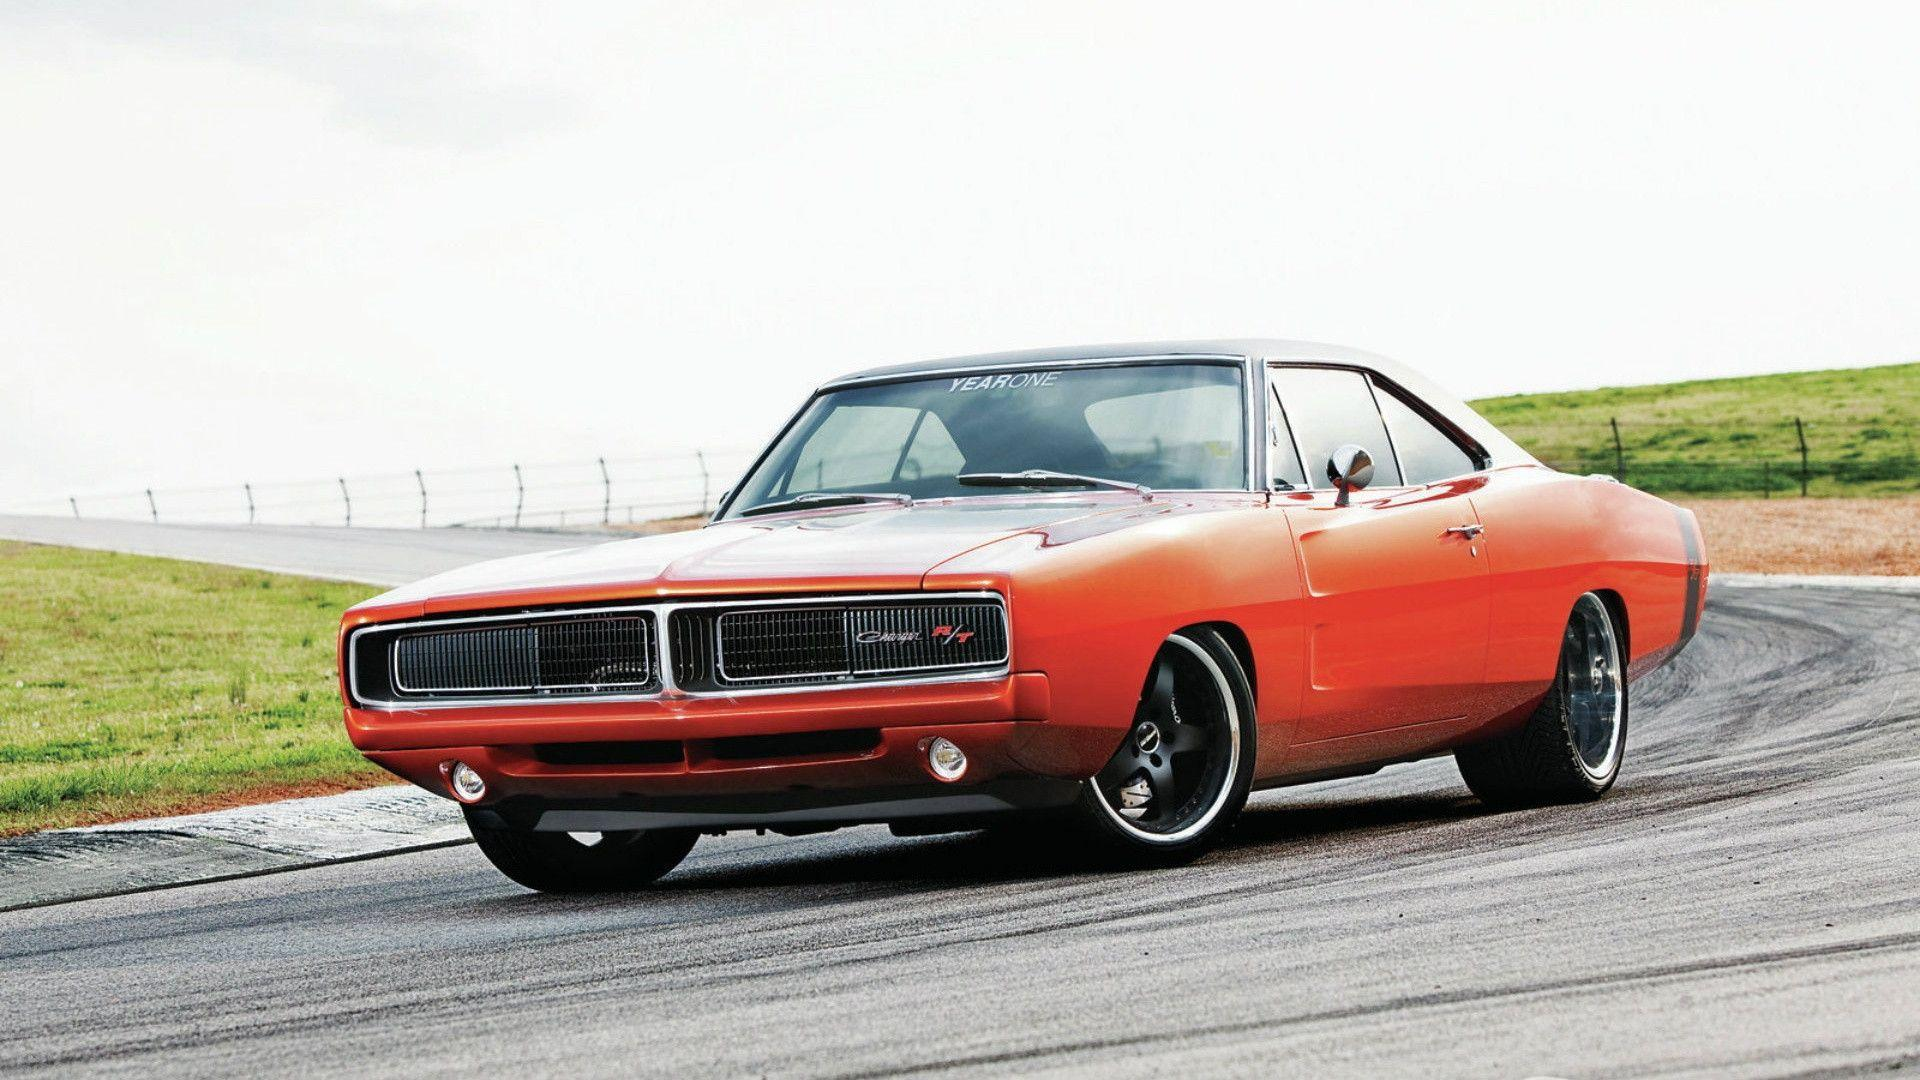 1969 charger wallpaper - photo #1